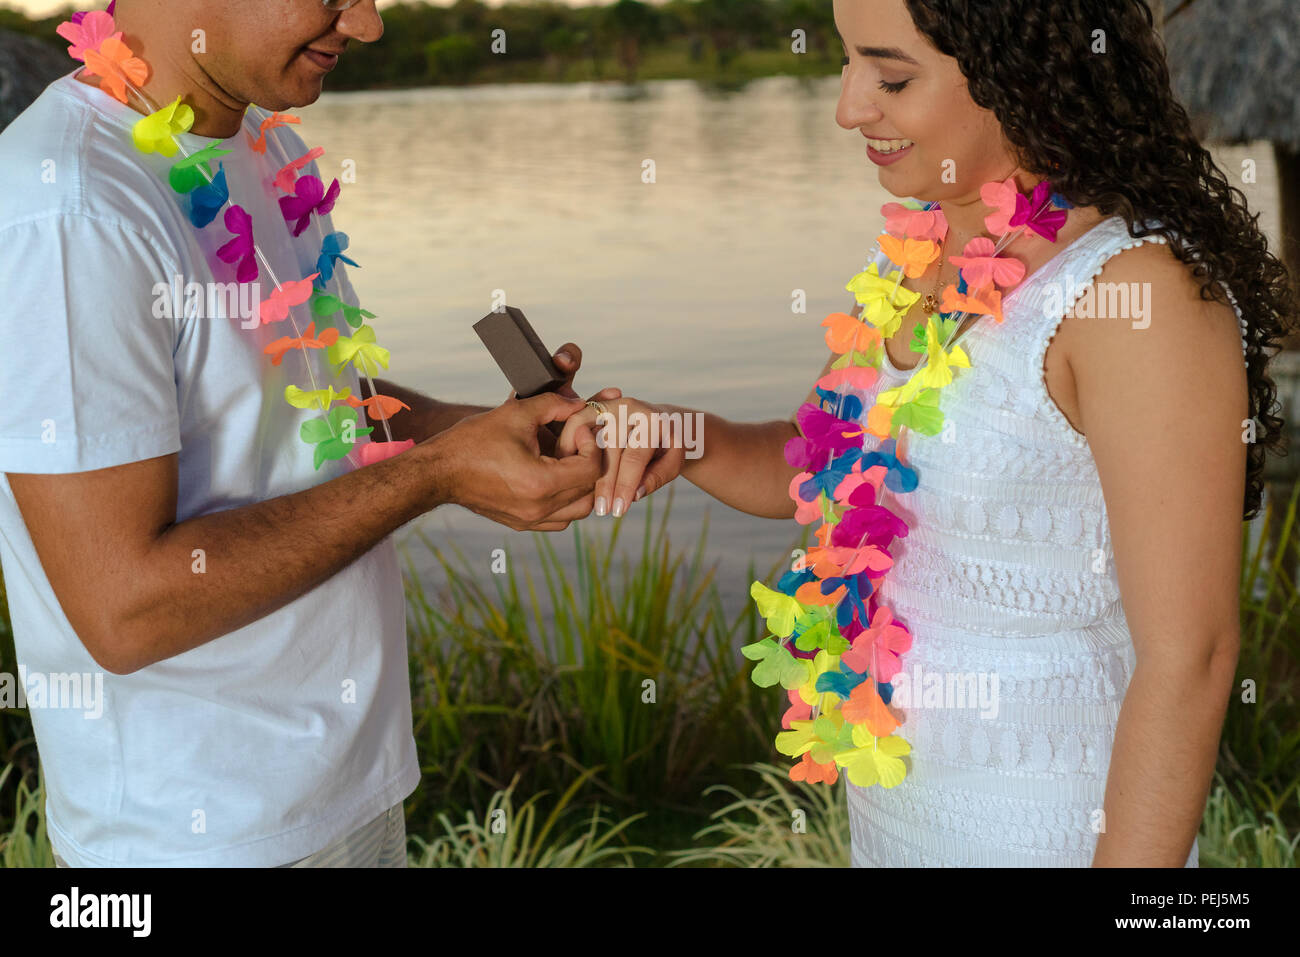 Passionate and happy couple after accepting marriage, Various poses and interactions of this new couple - Stock Image